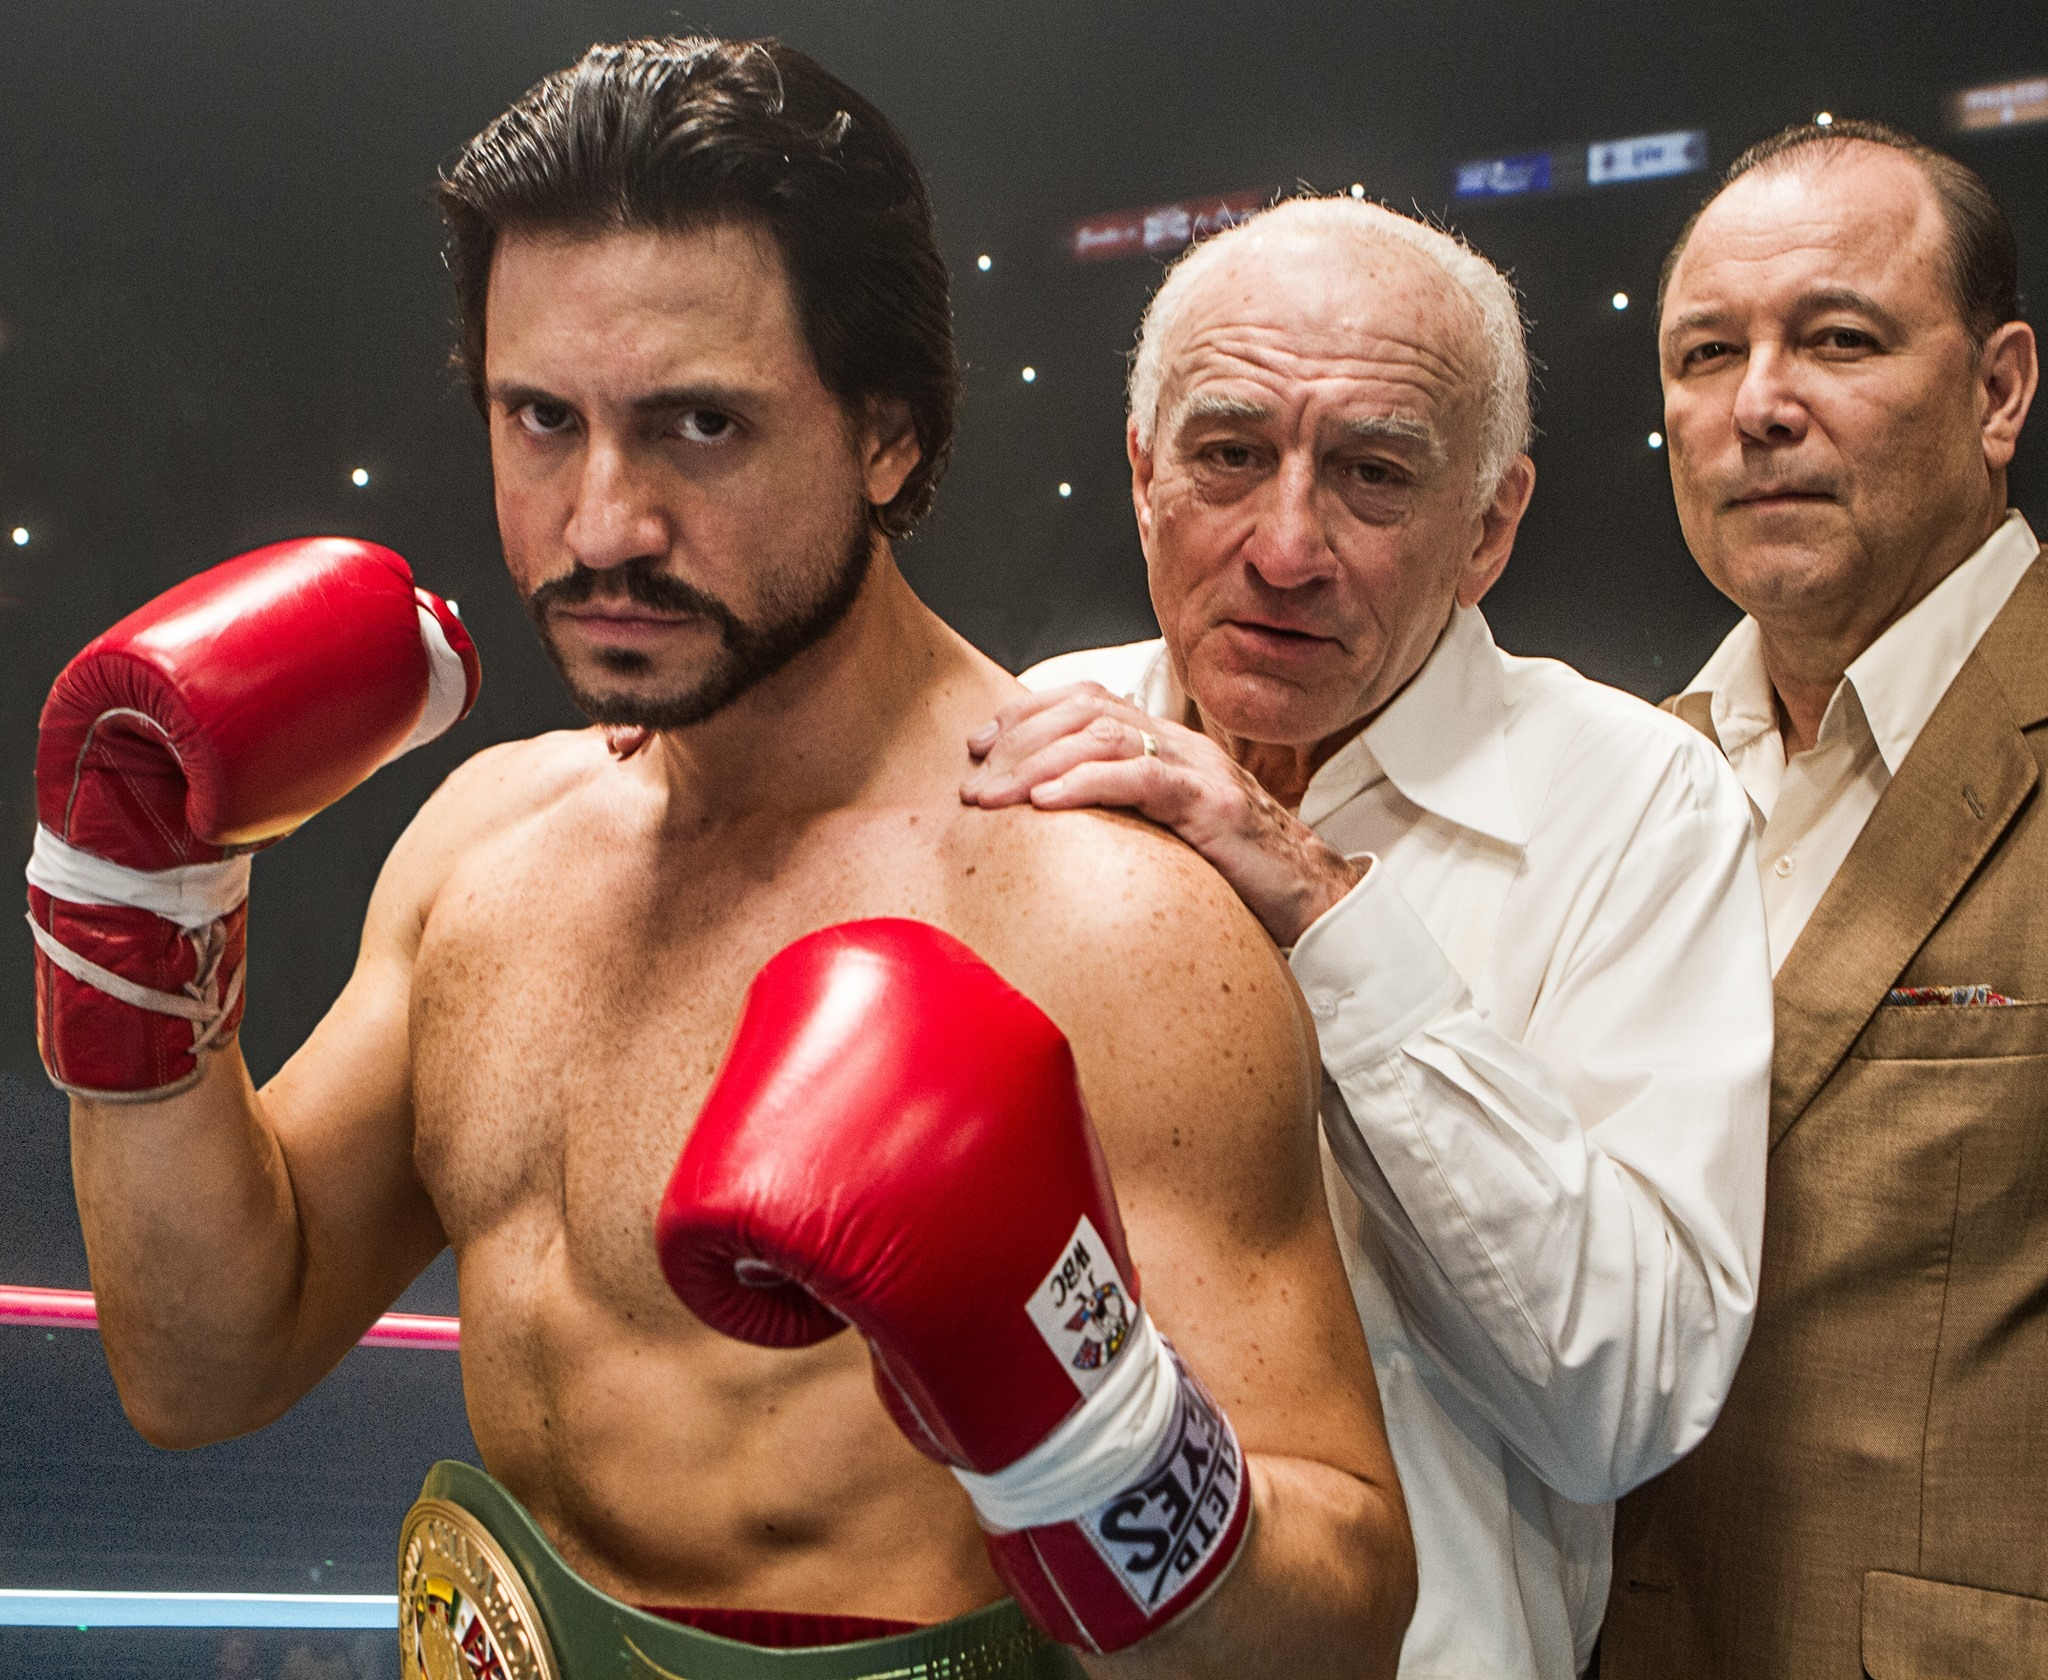 Roberto Duran Biopic 'Hands of Stone' Finally Gets a Release Date